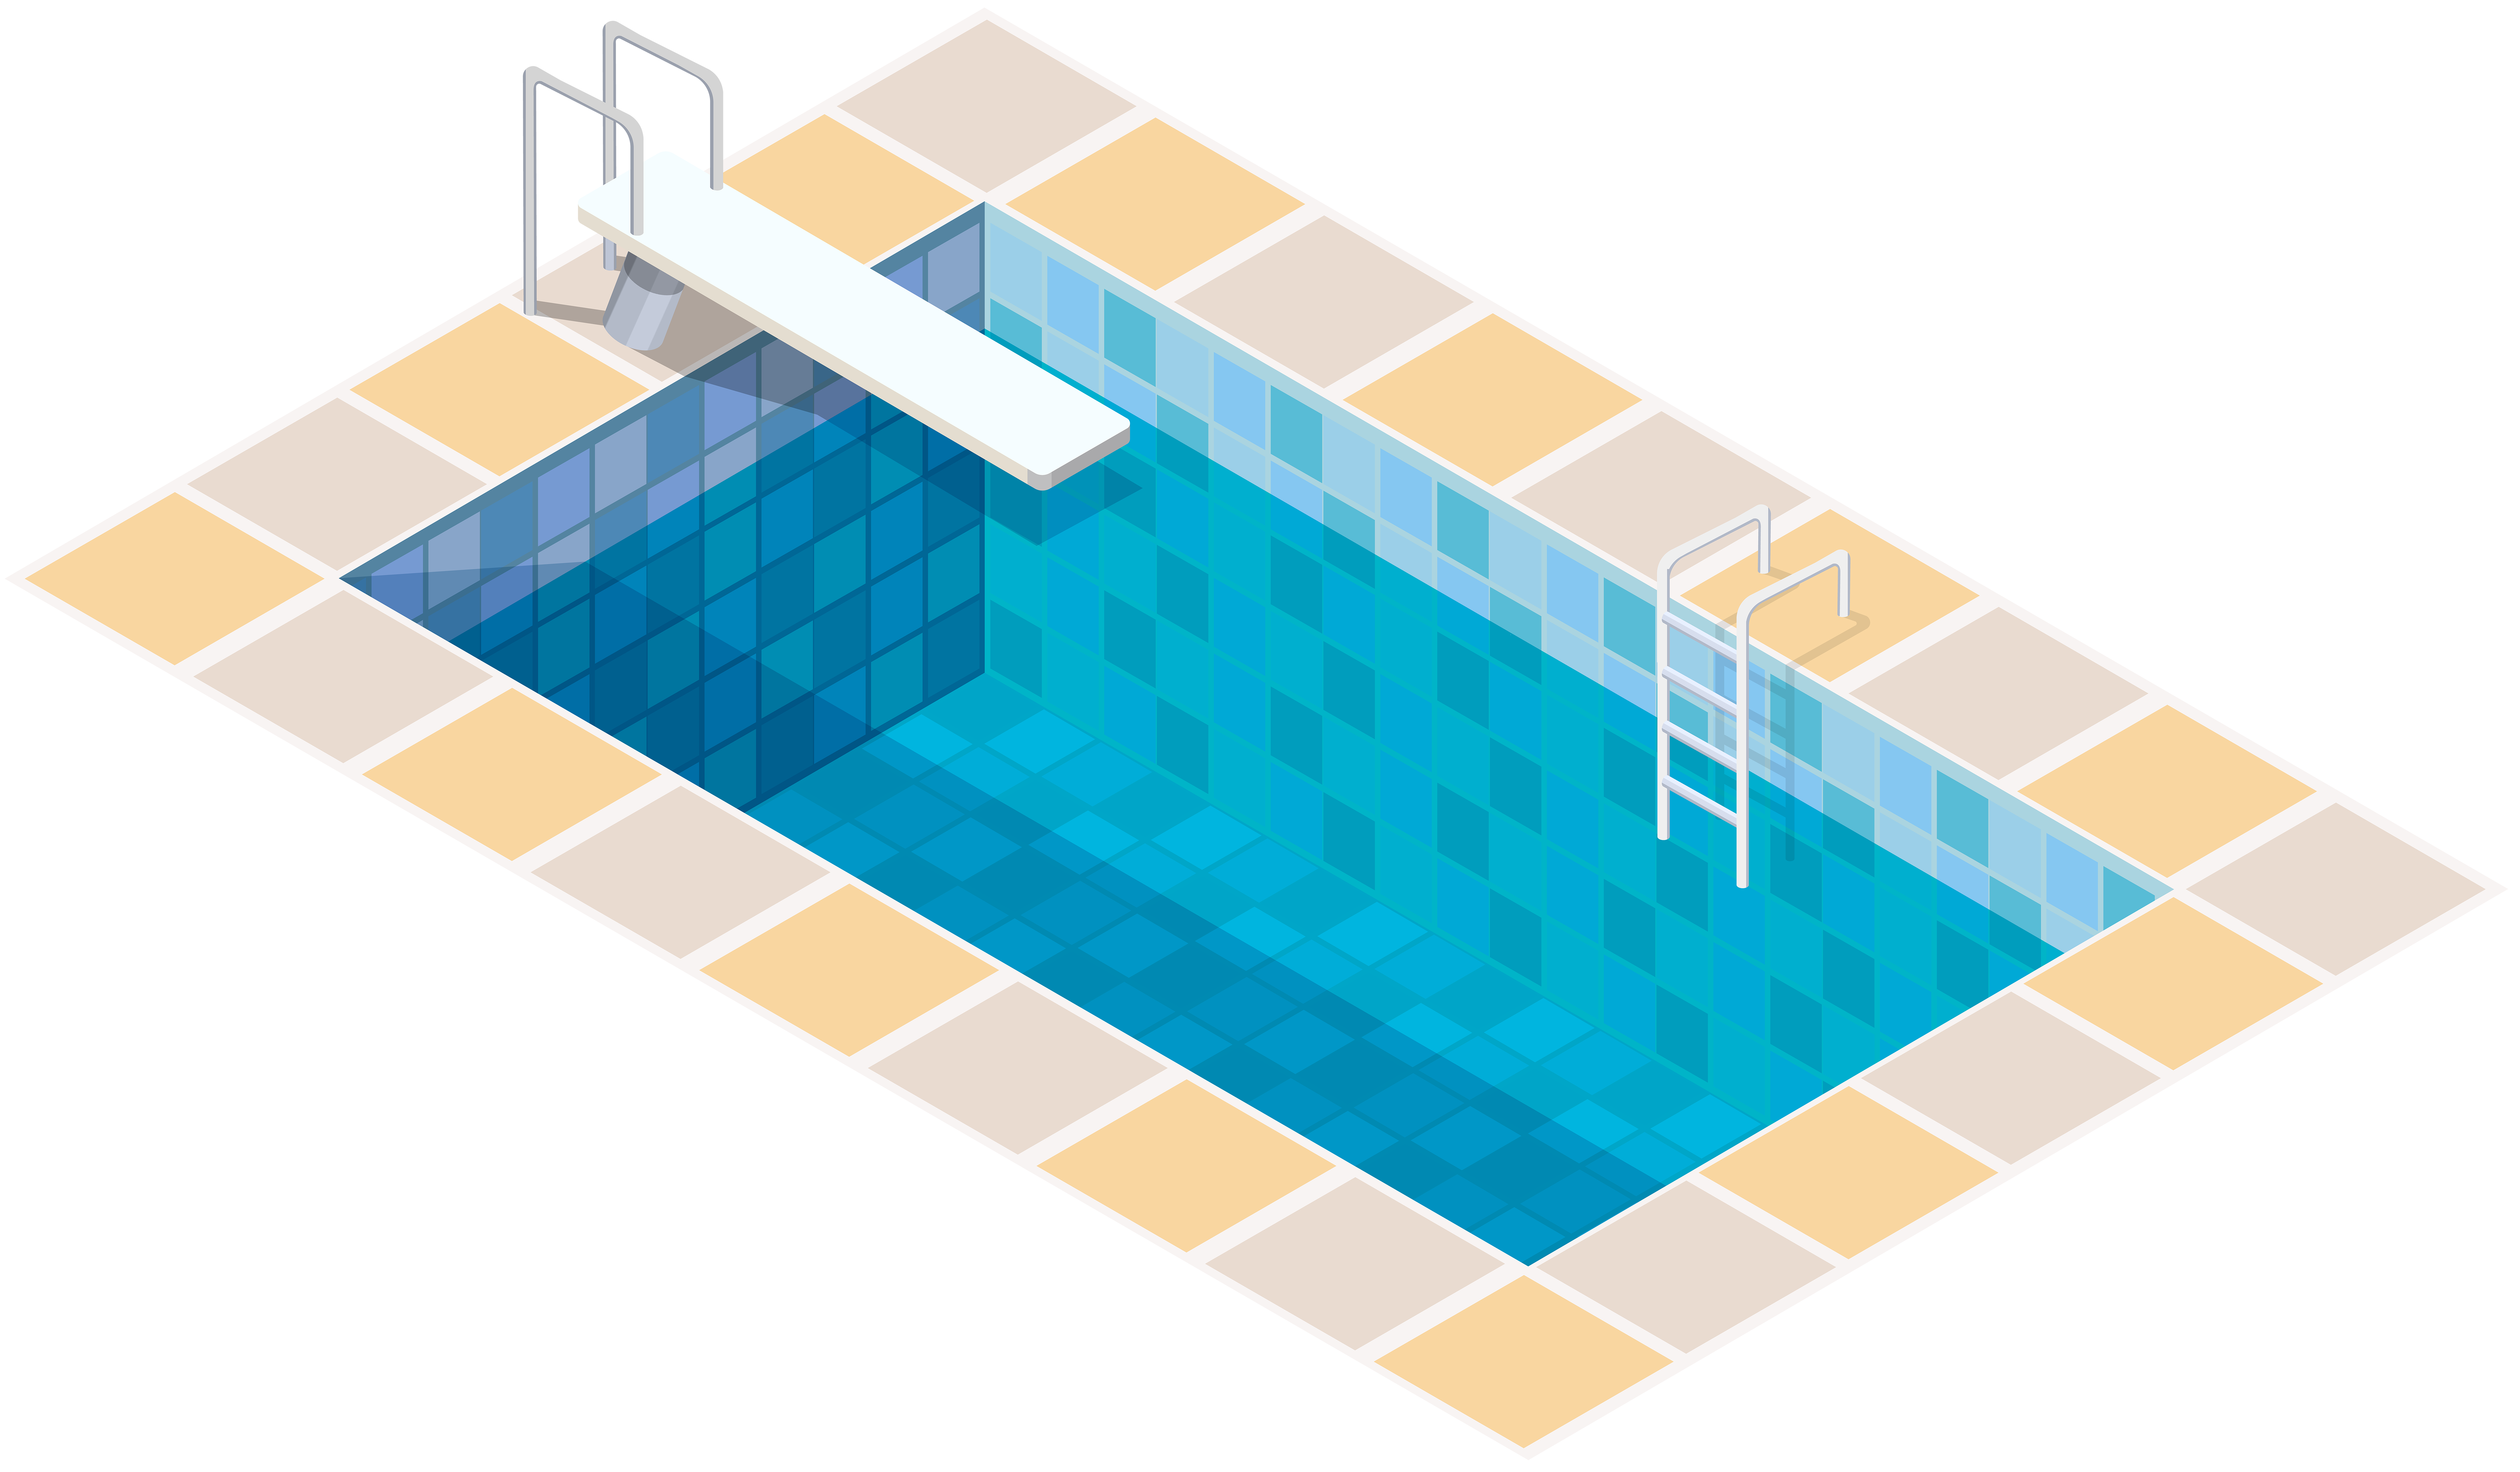 Swimming pool clipart png. Clip art best web